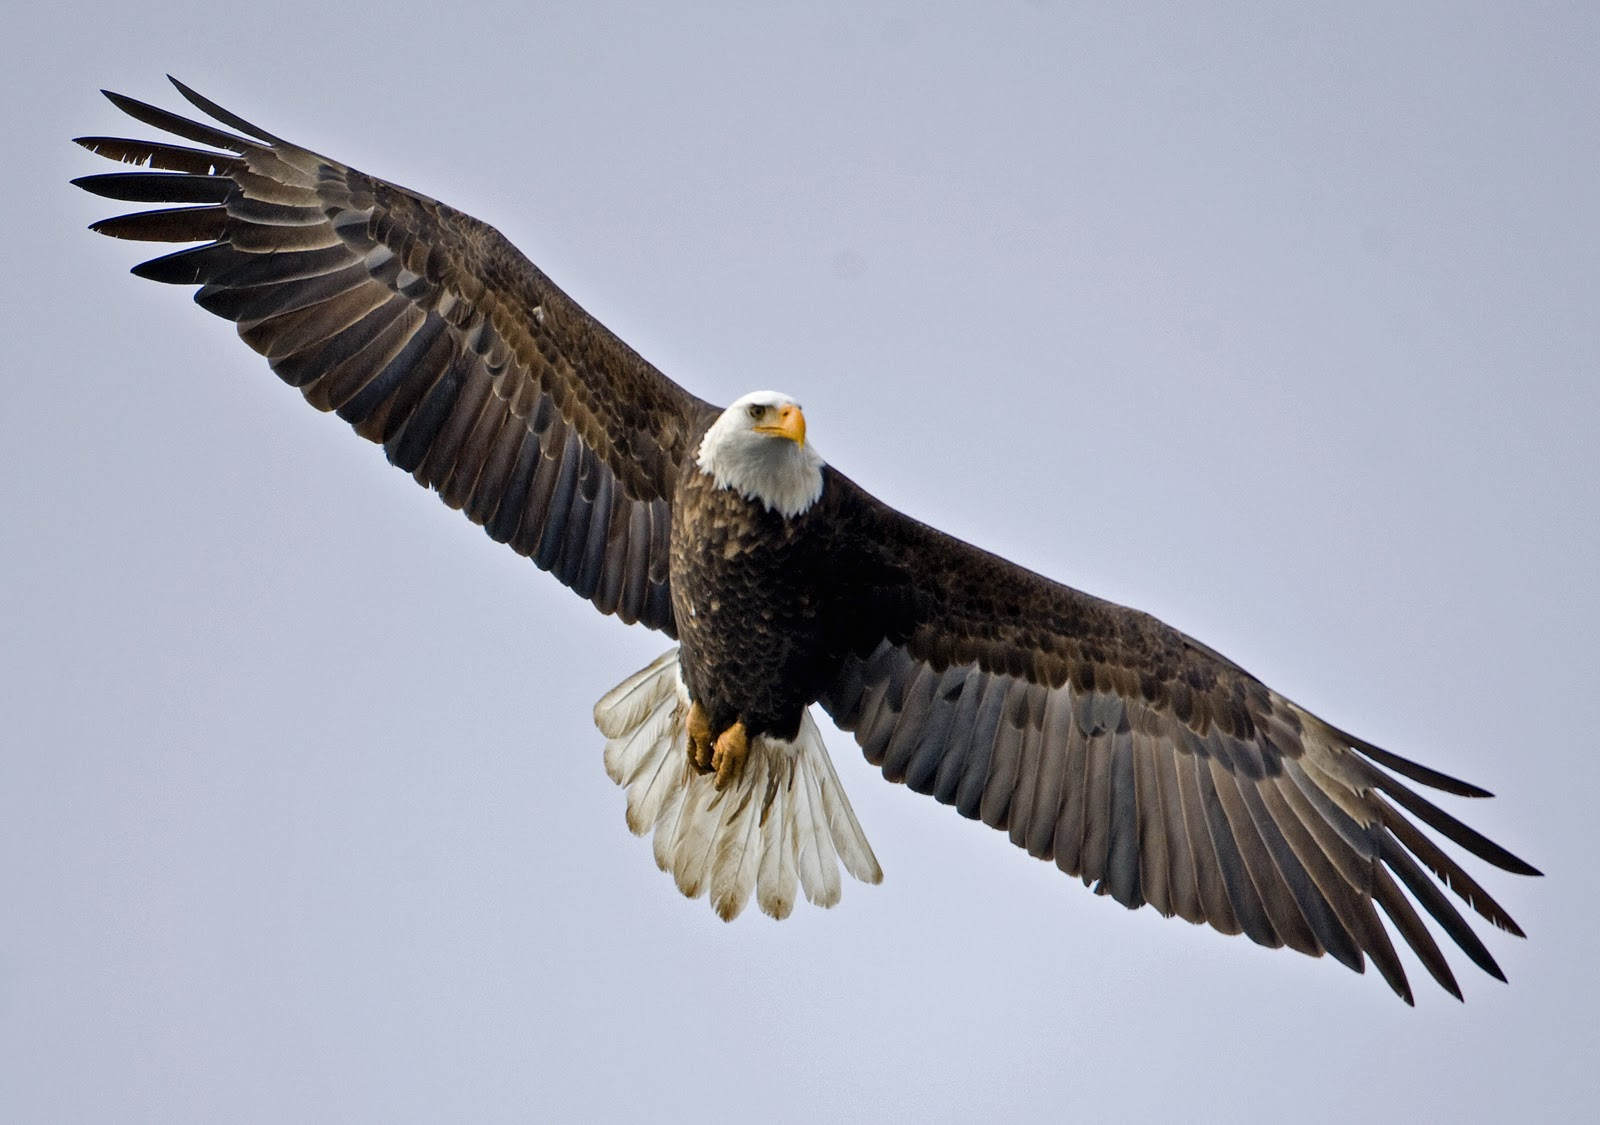 Bald Eagles Bird Population | Era Duju wallpaper blog